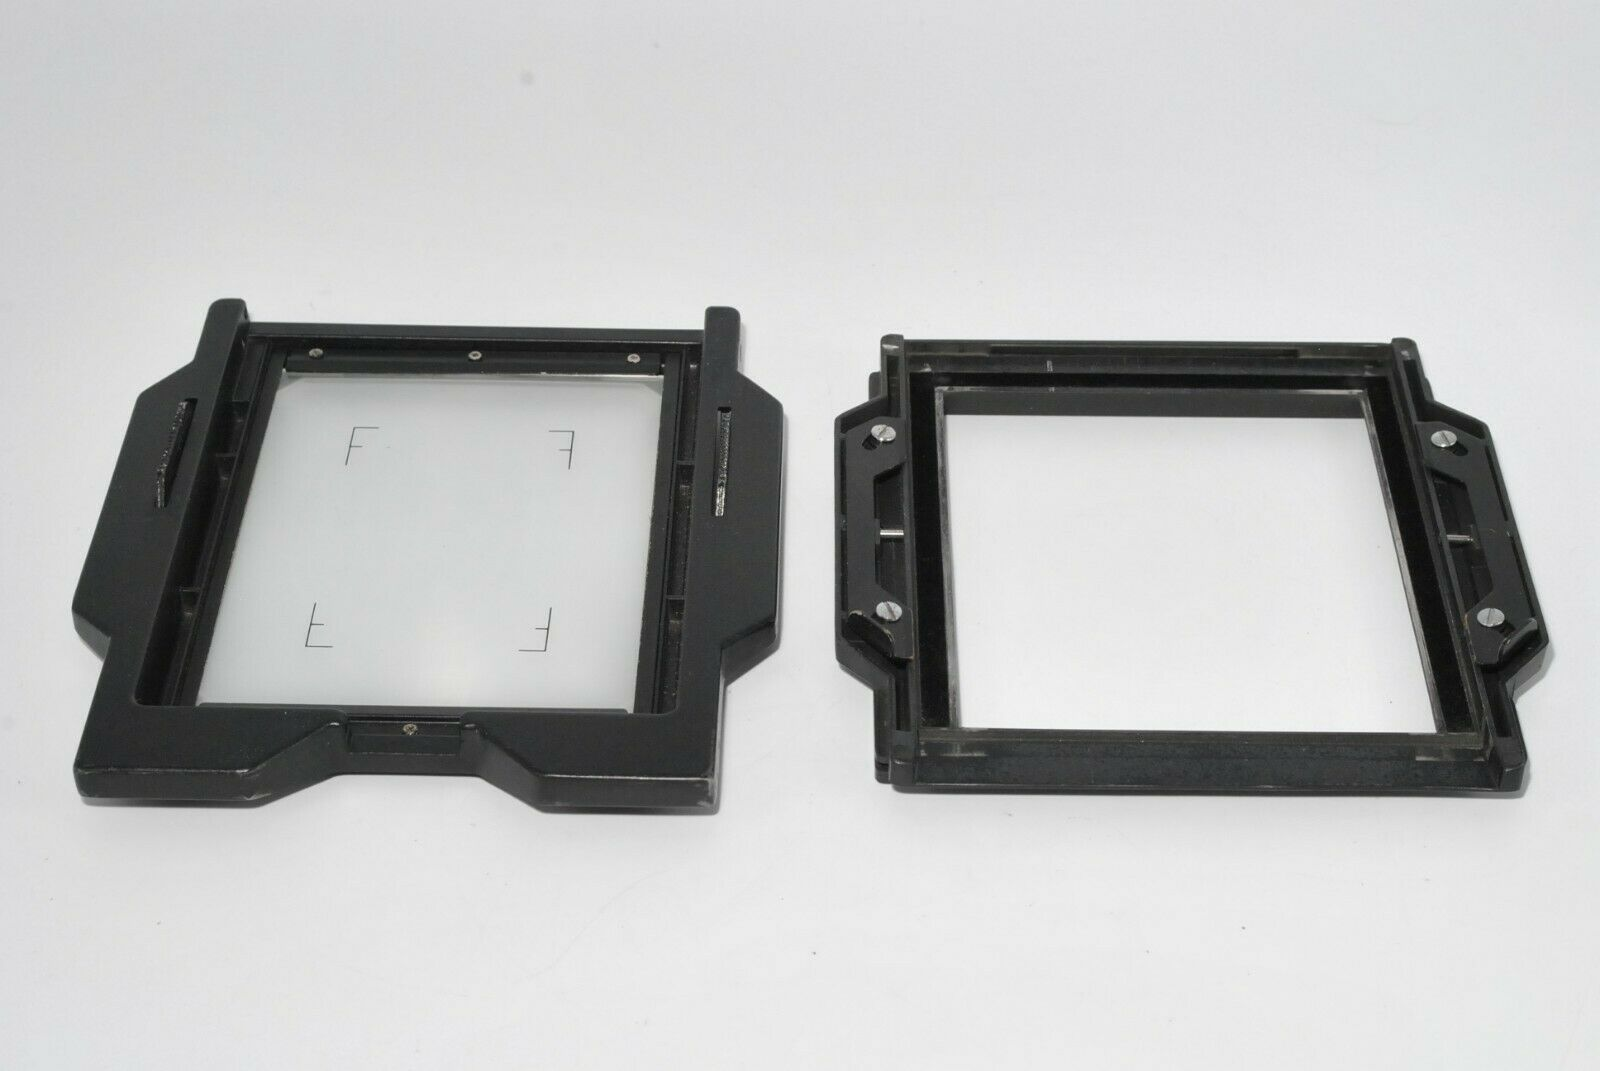 Horseman 4x5 back adapter w/ Glass for Large Format Sinar from Japan